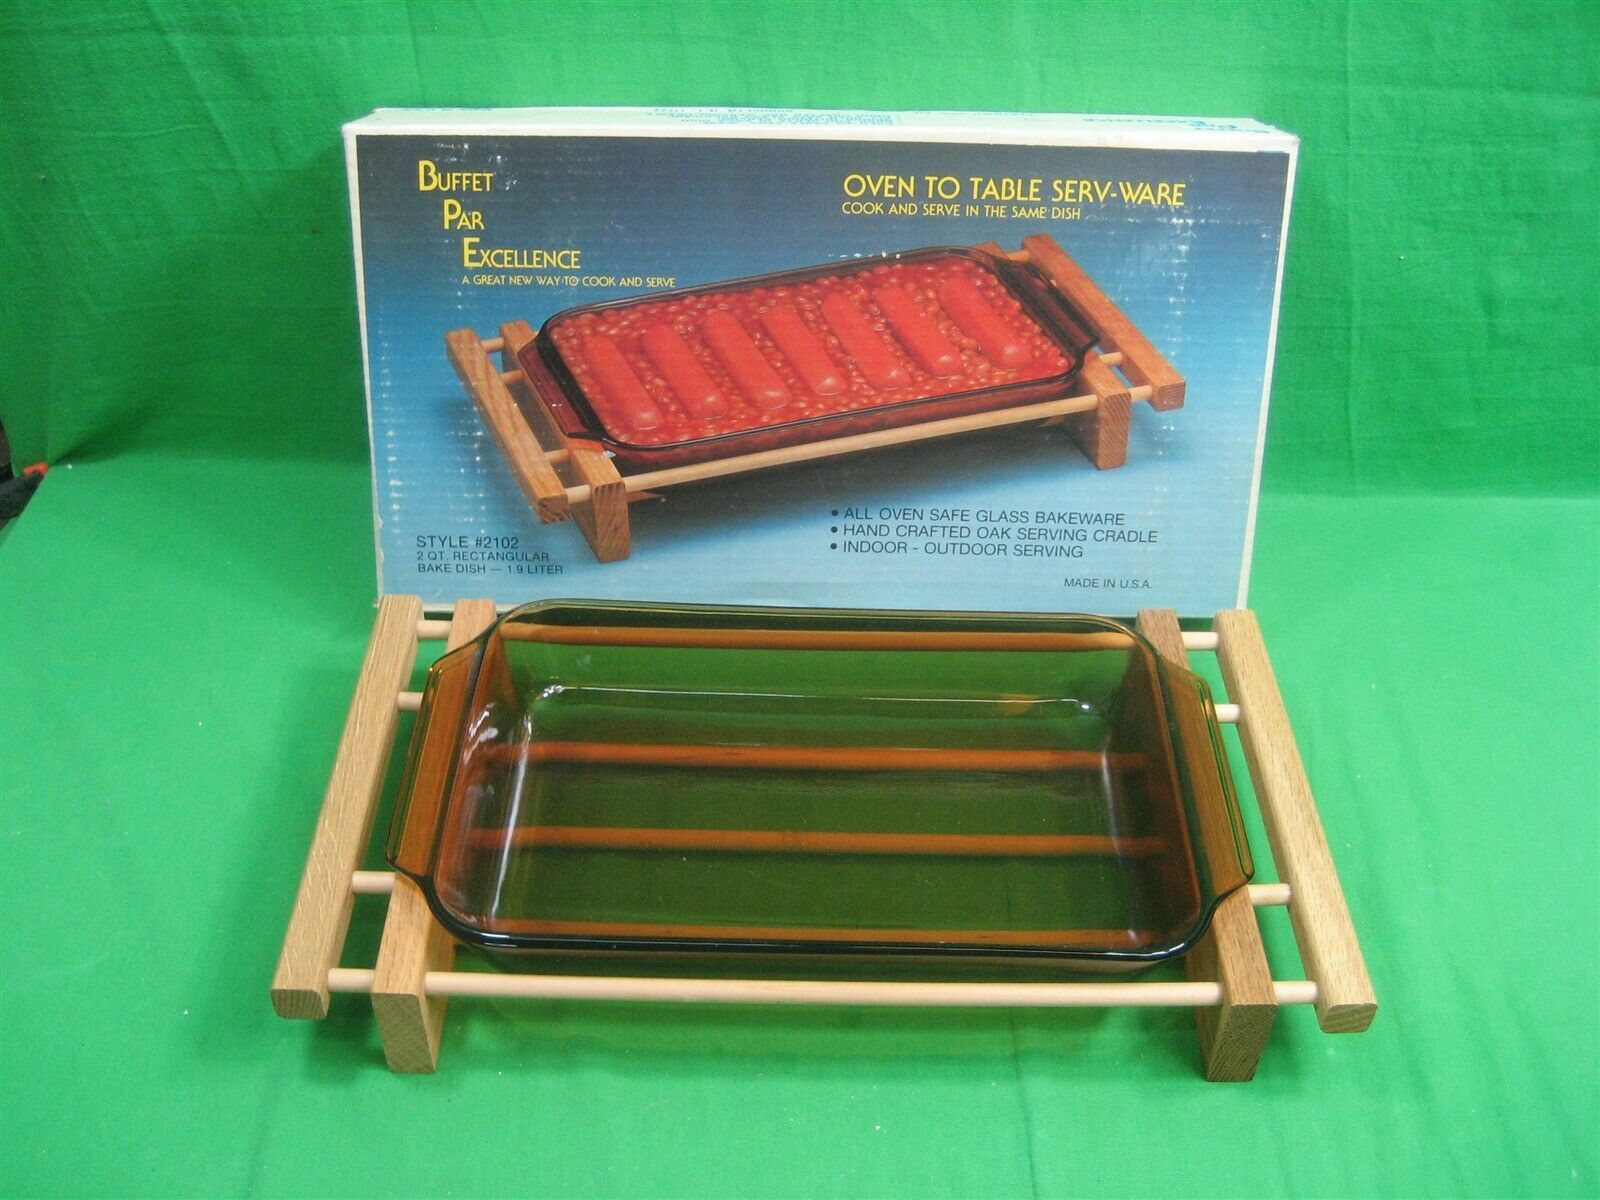 Vintage Oven To Table Glass Bakeware Buffet Par Excellence Wood Server USA - $25.19